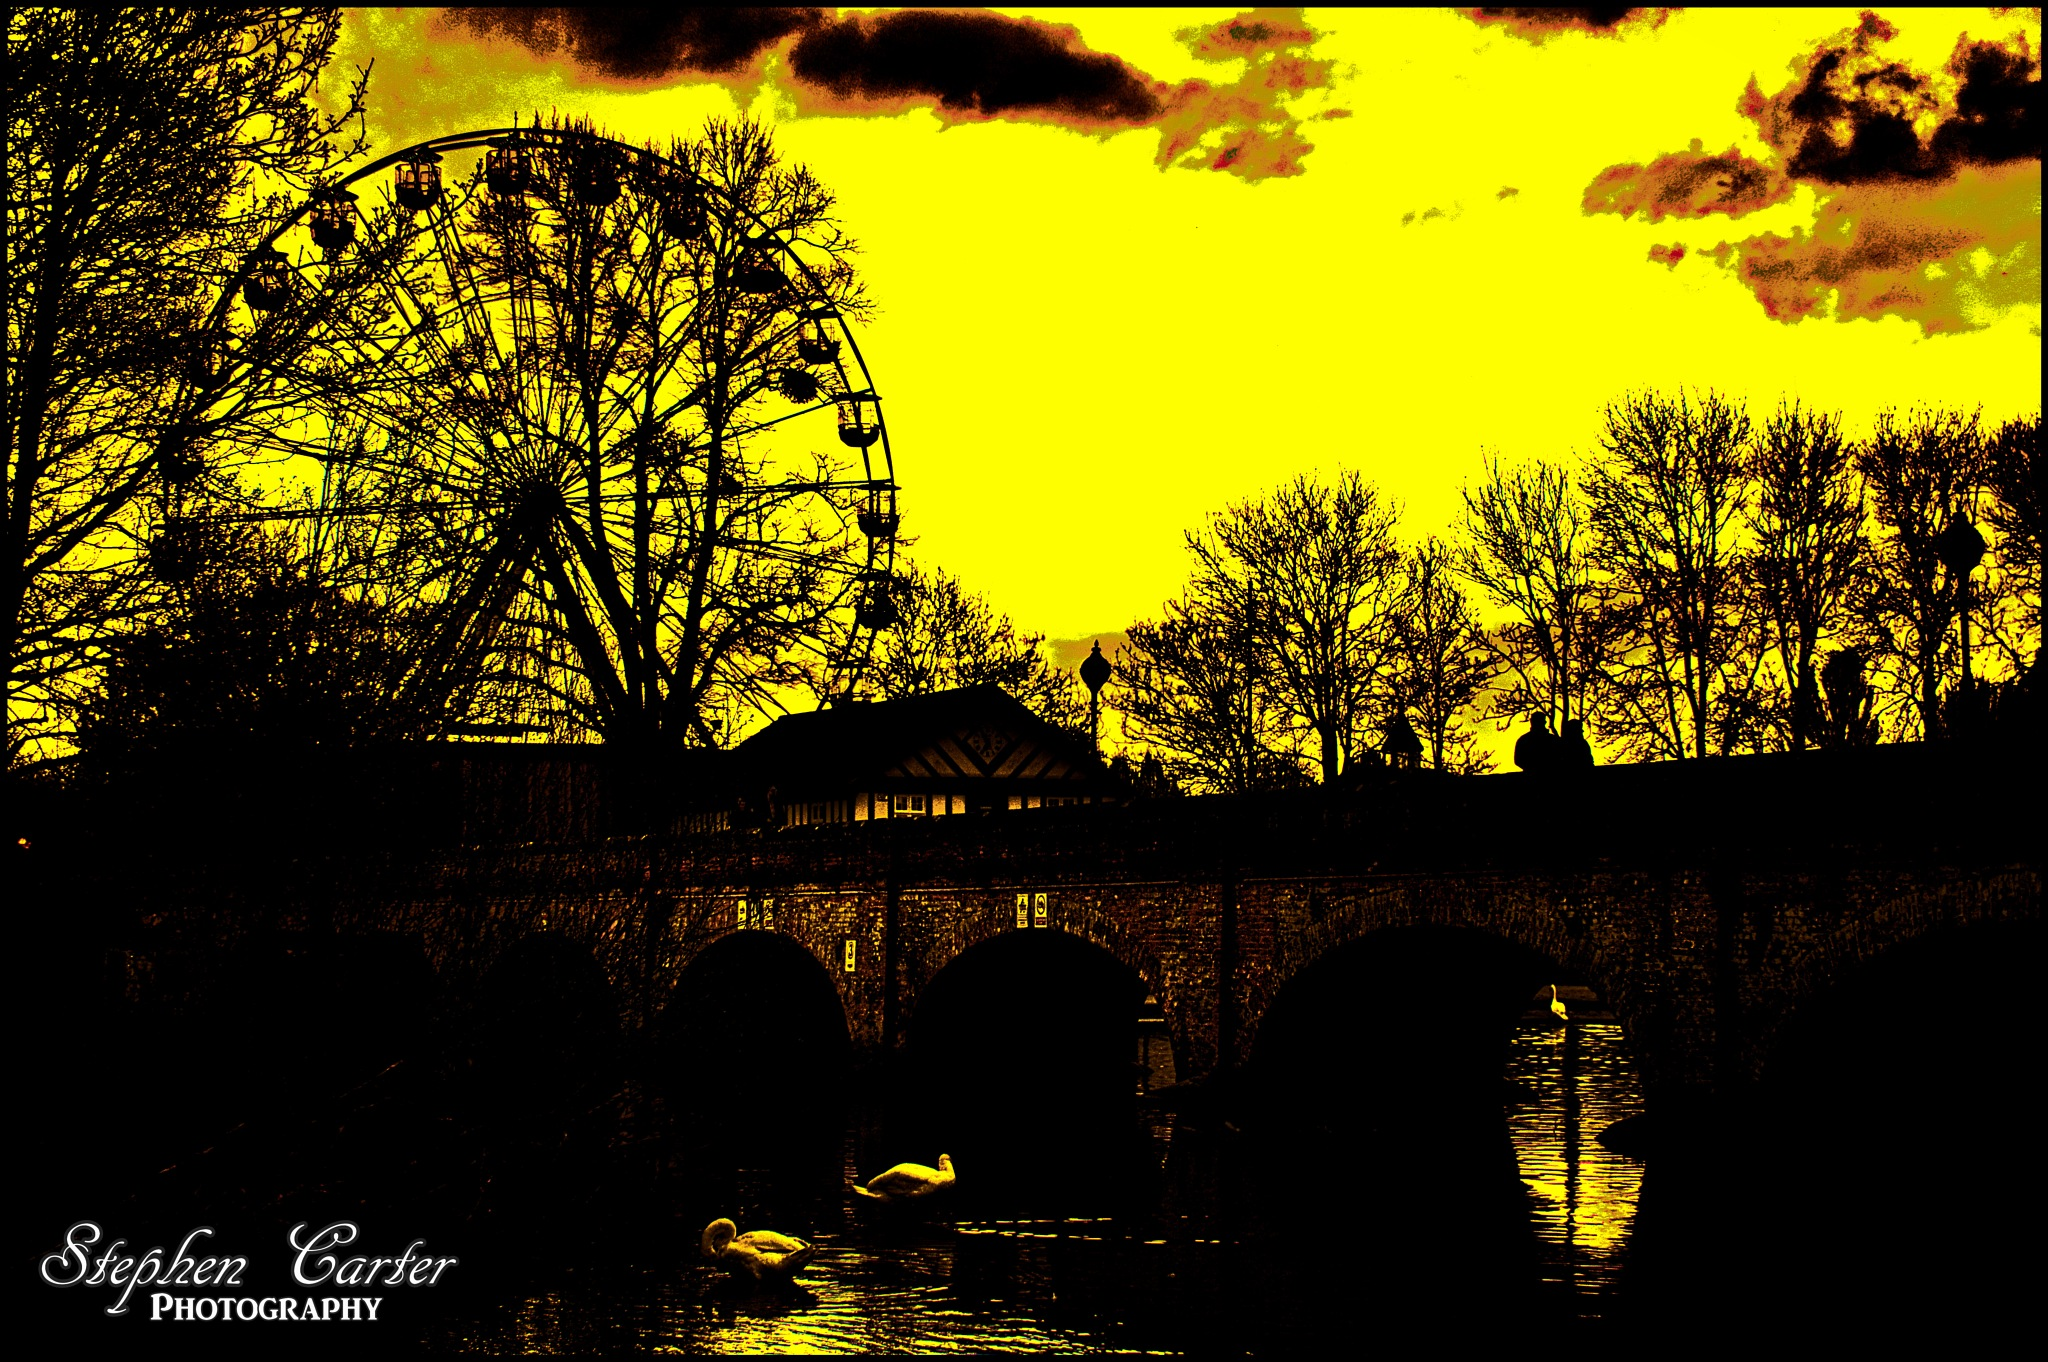 Stratford Silhouette by Stephen Carter Photography